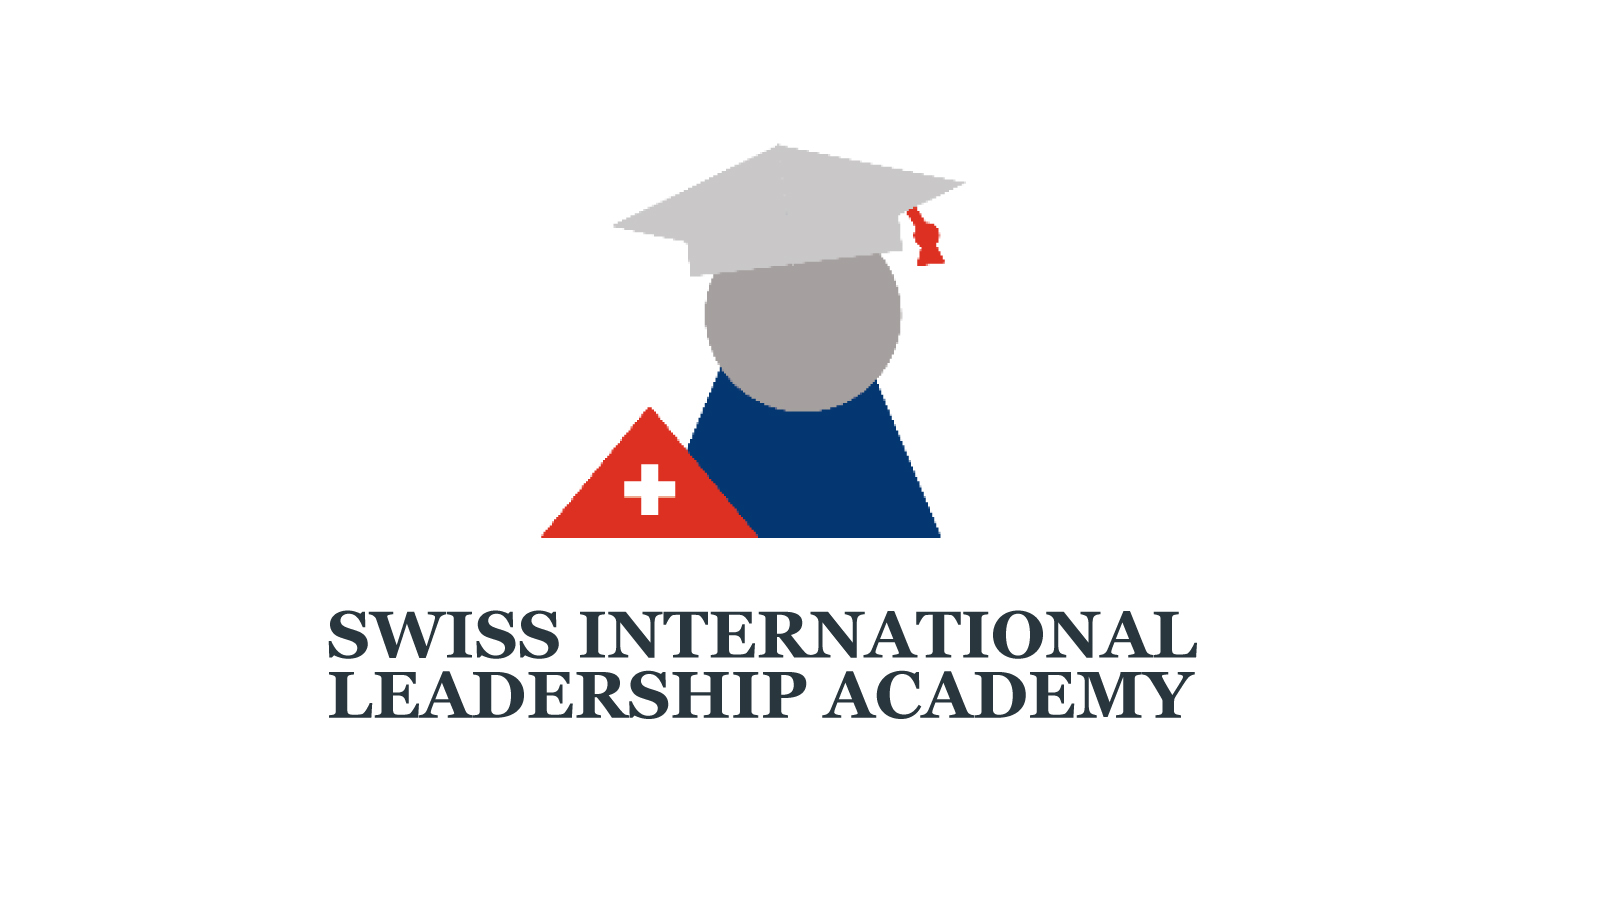 Swiss International Leadership Academy